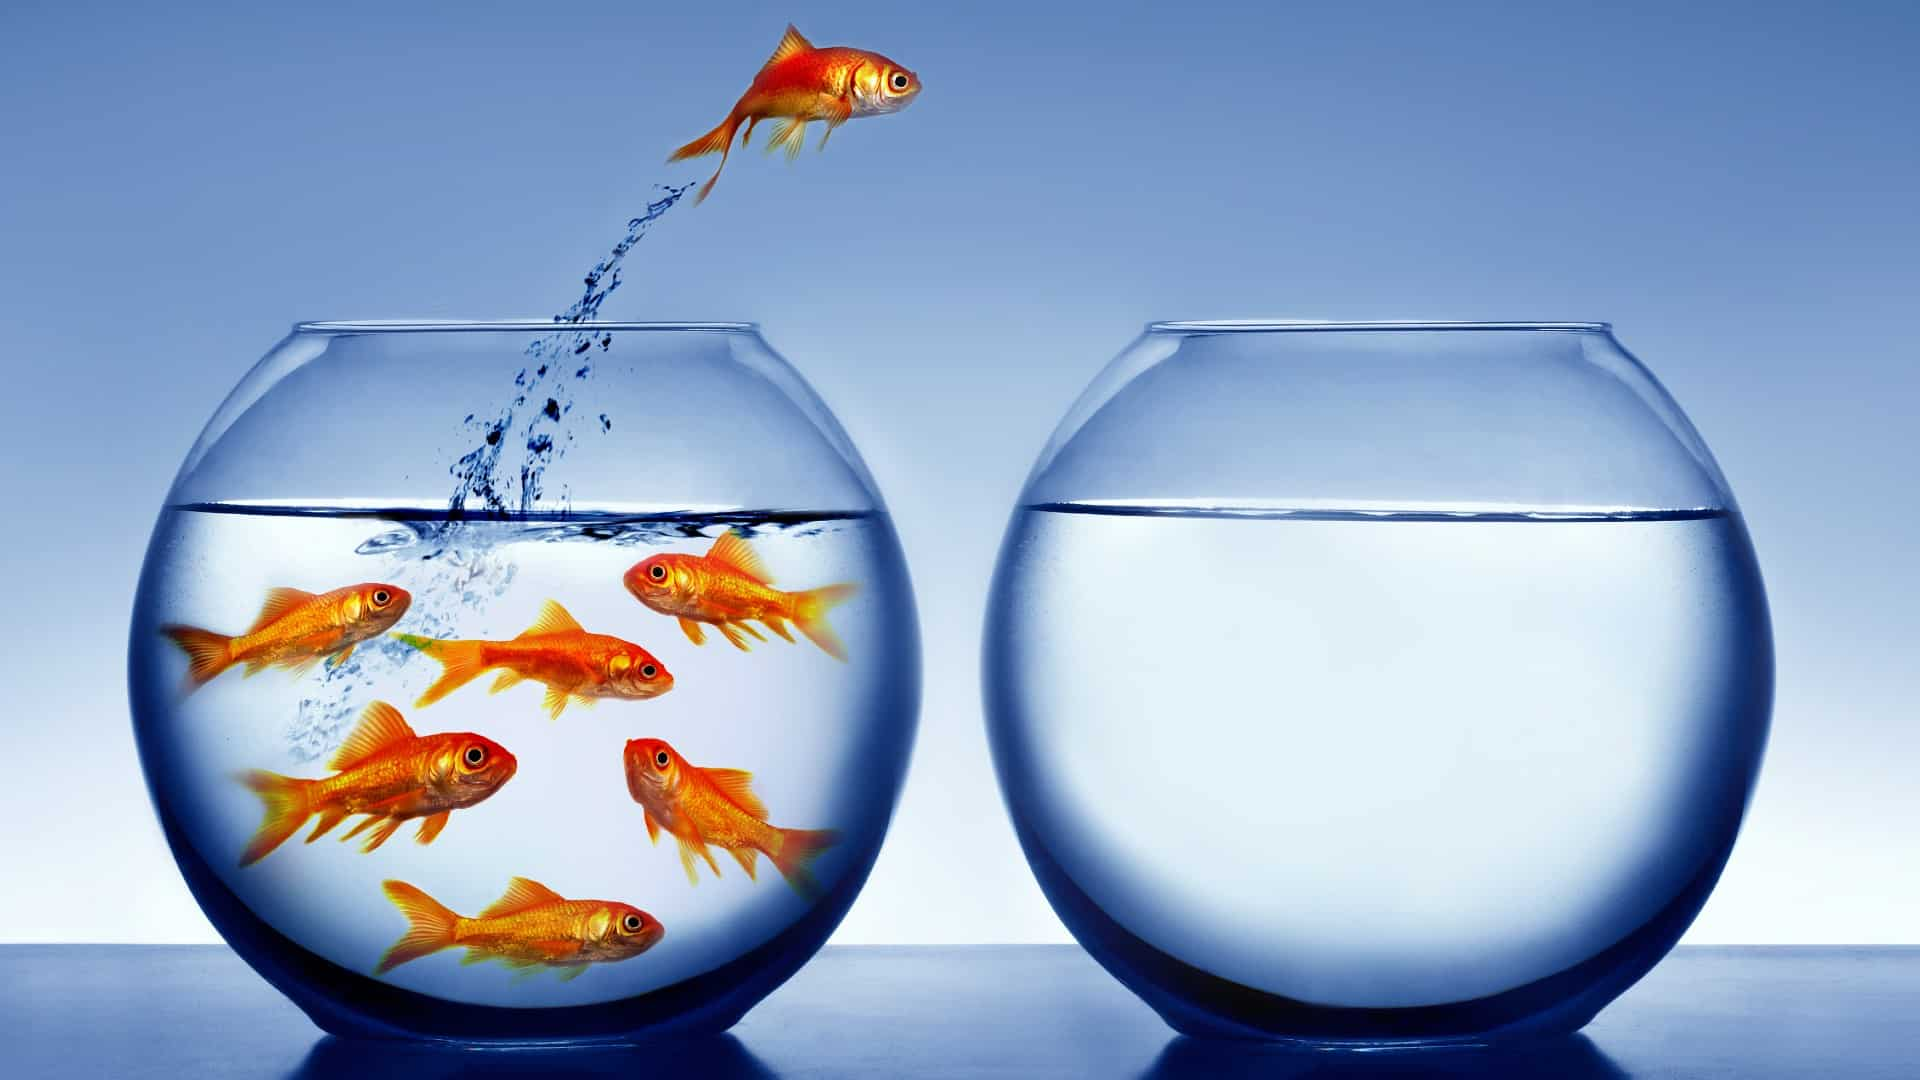 A goldfish jumps out of a crowded fishbowl into another empty bowl, indicating an ASX market leader with a strong share price